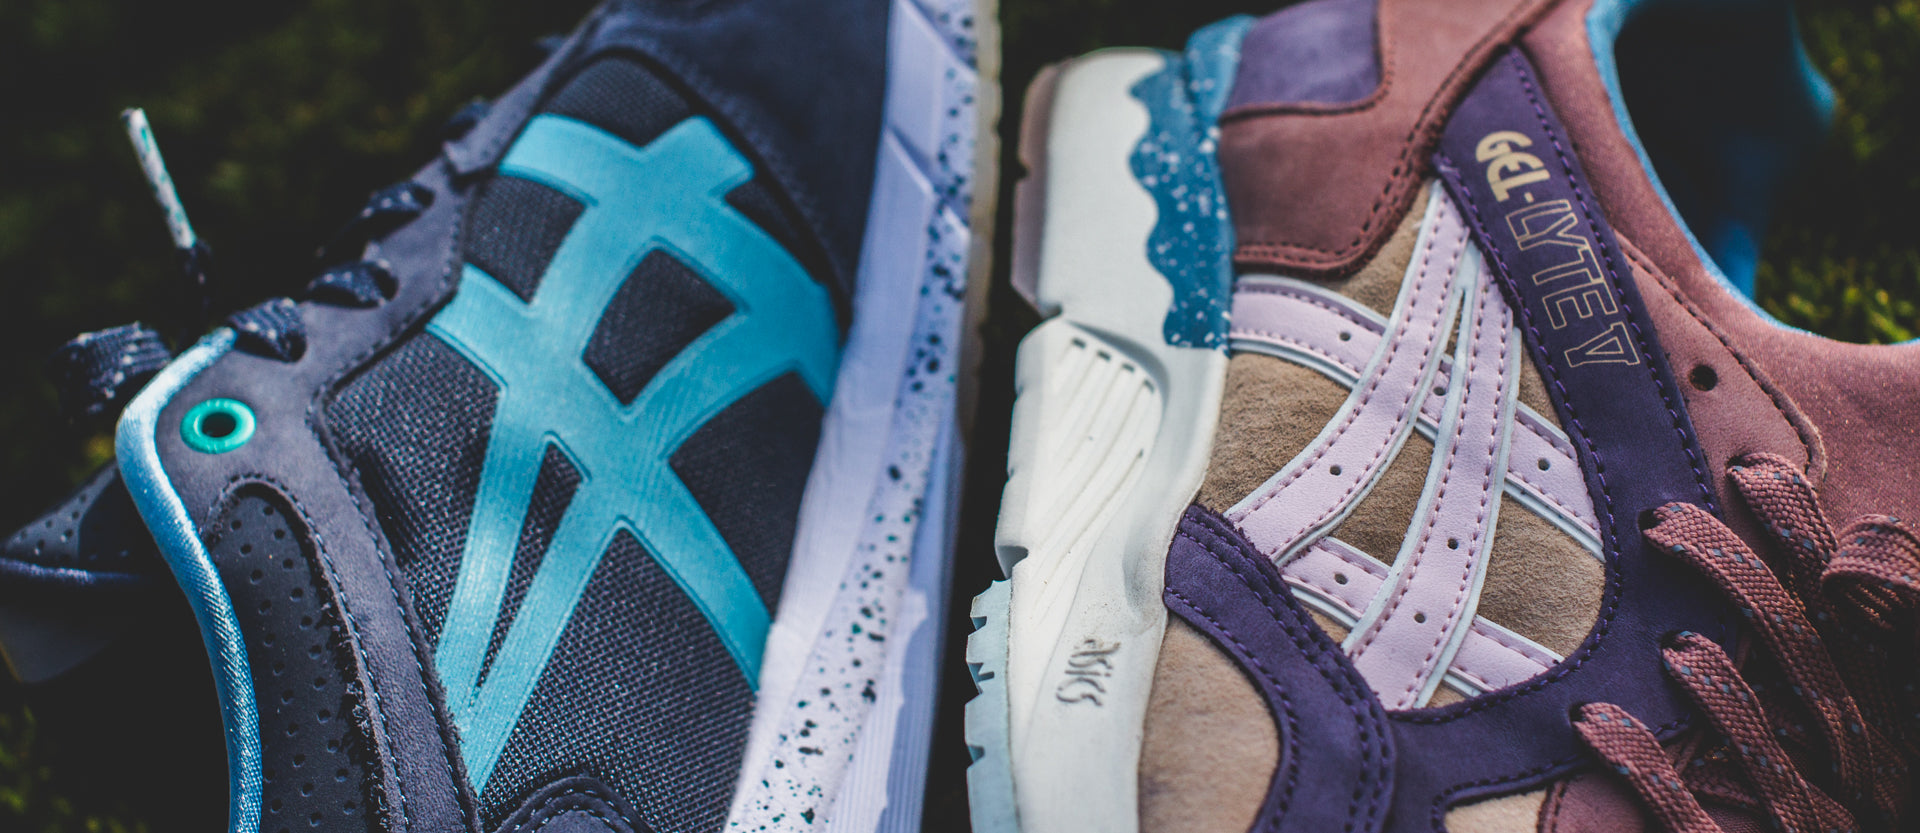 wholesale dealer 3a204 5eb45 Partnering with ASICS and Onitsuka Tiger, UK based retailer Offspring  presents two new mockups of the popular Gel Lyte V and the up-and-coming Shaw  Runner ...